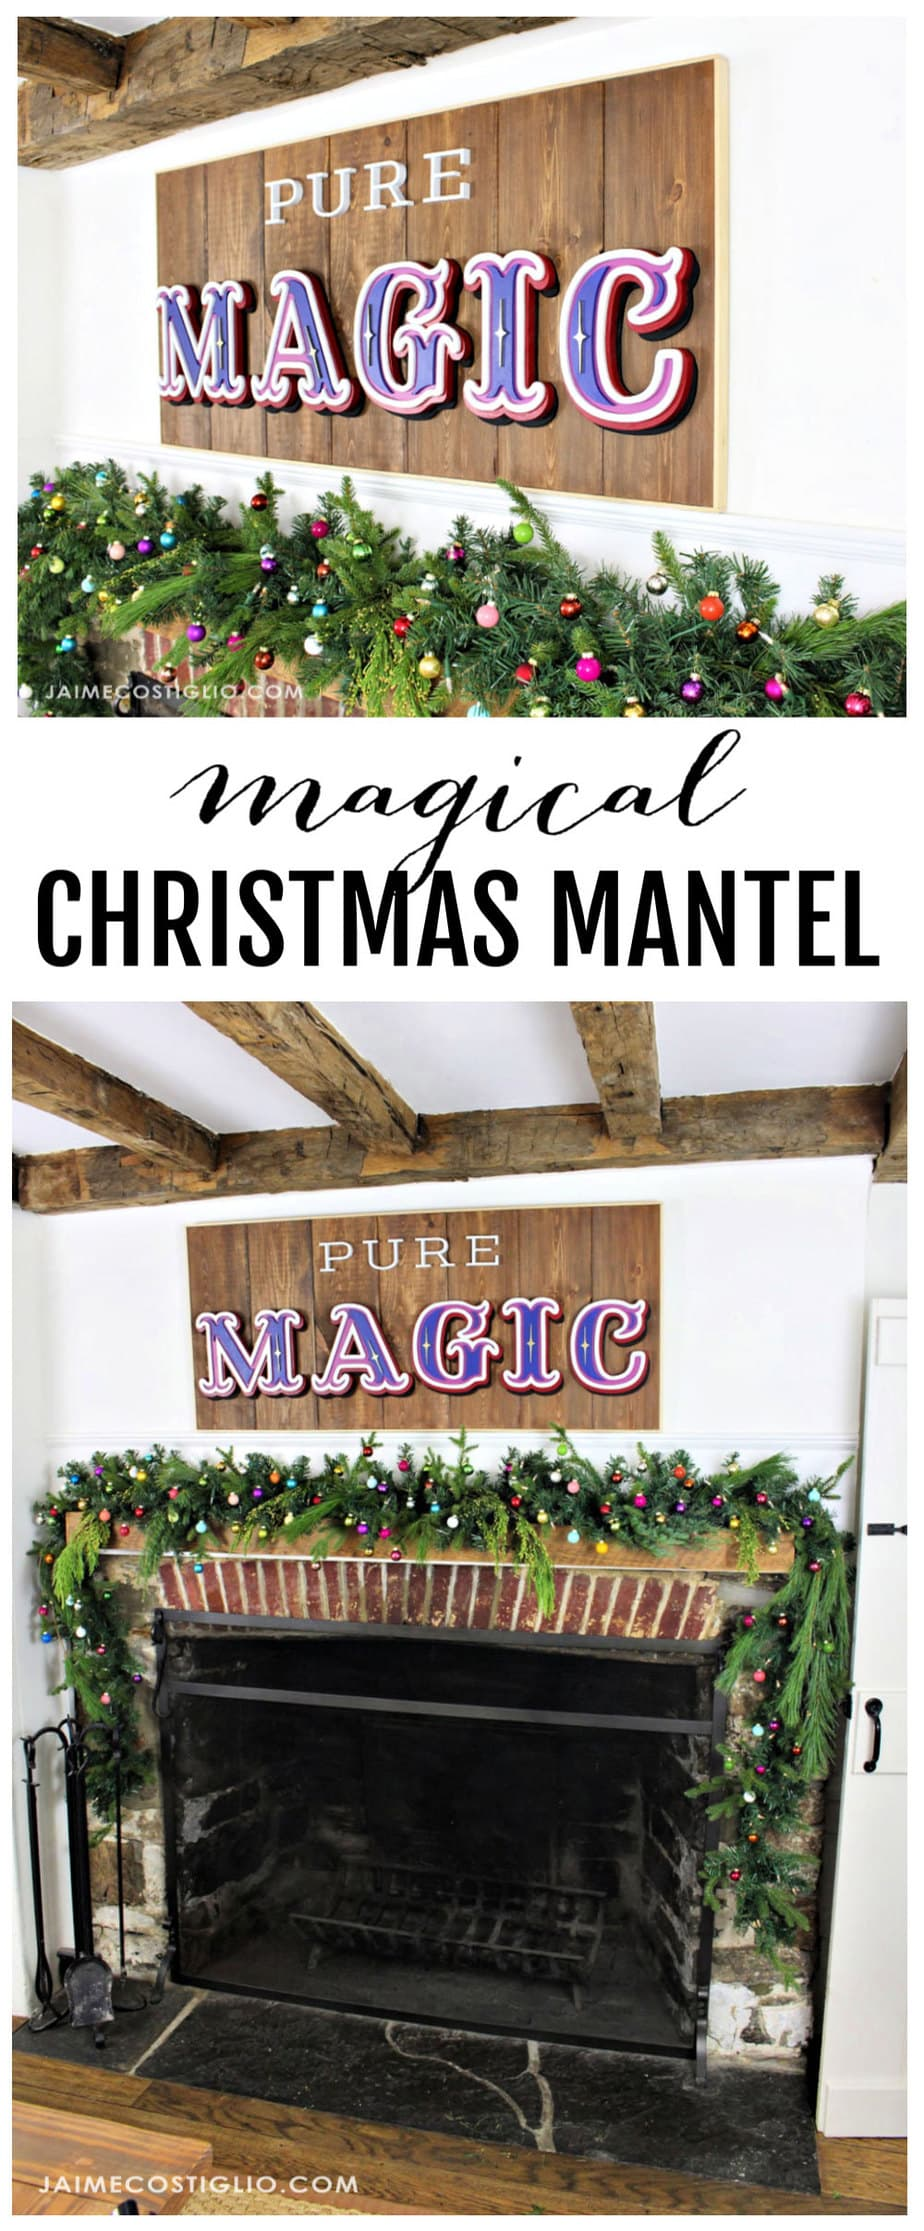 diy magical christmas mantel decor